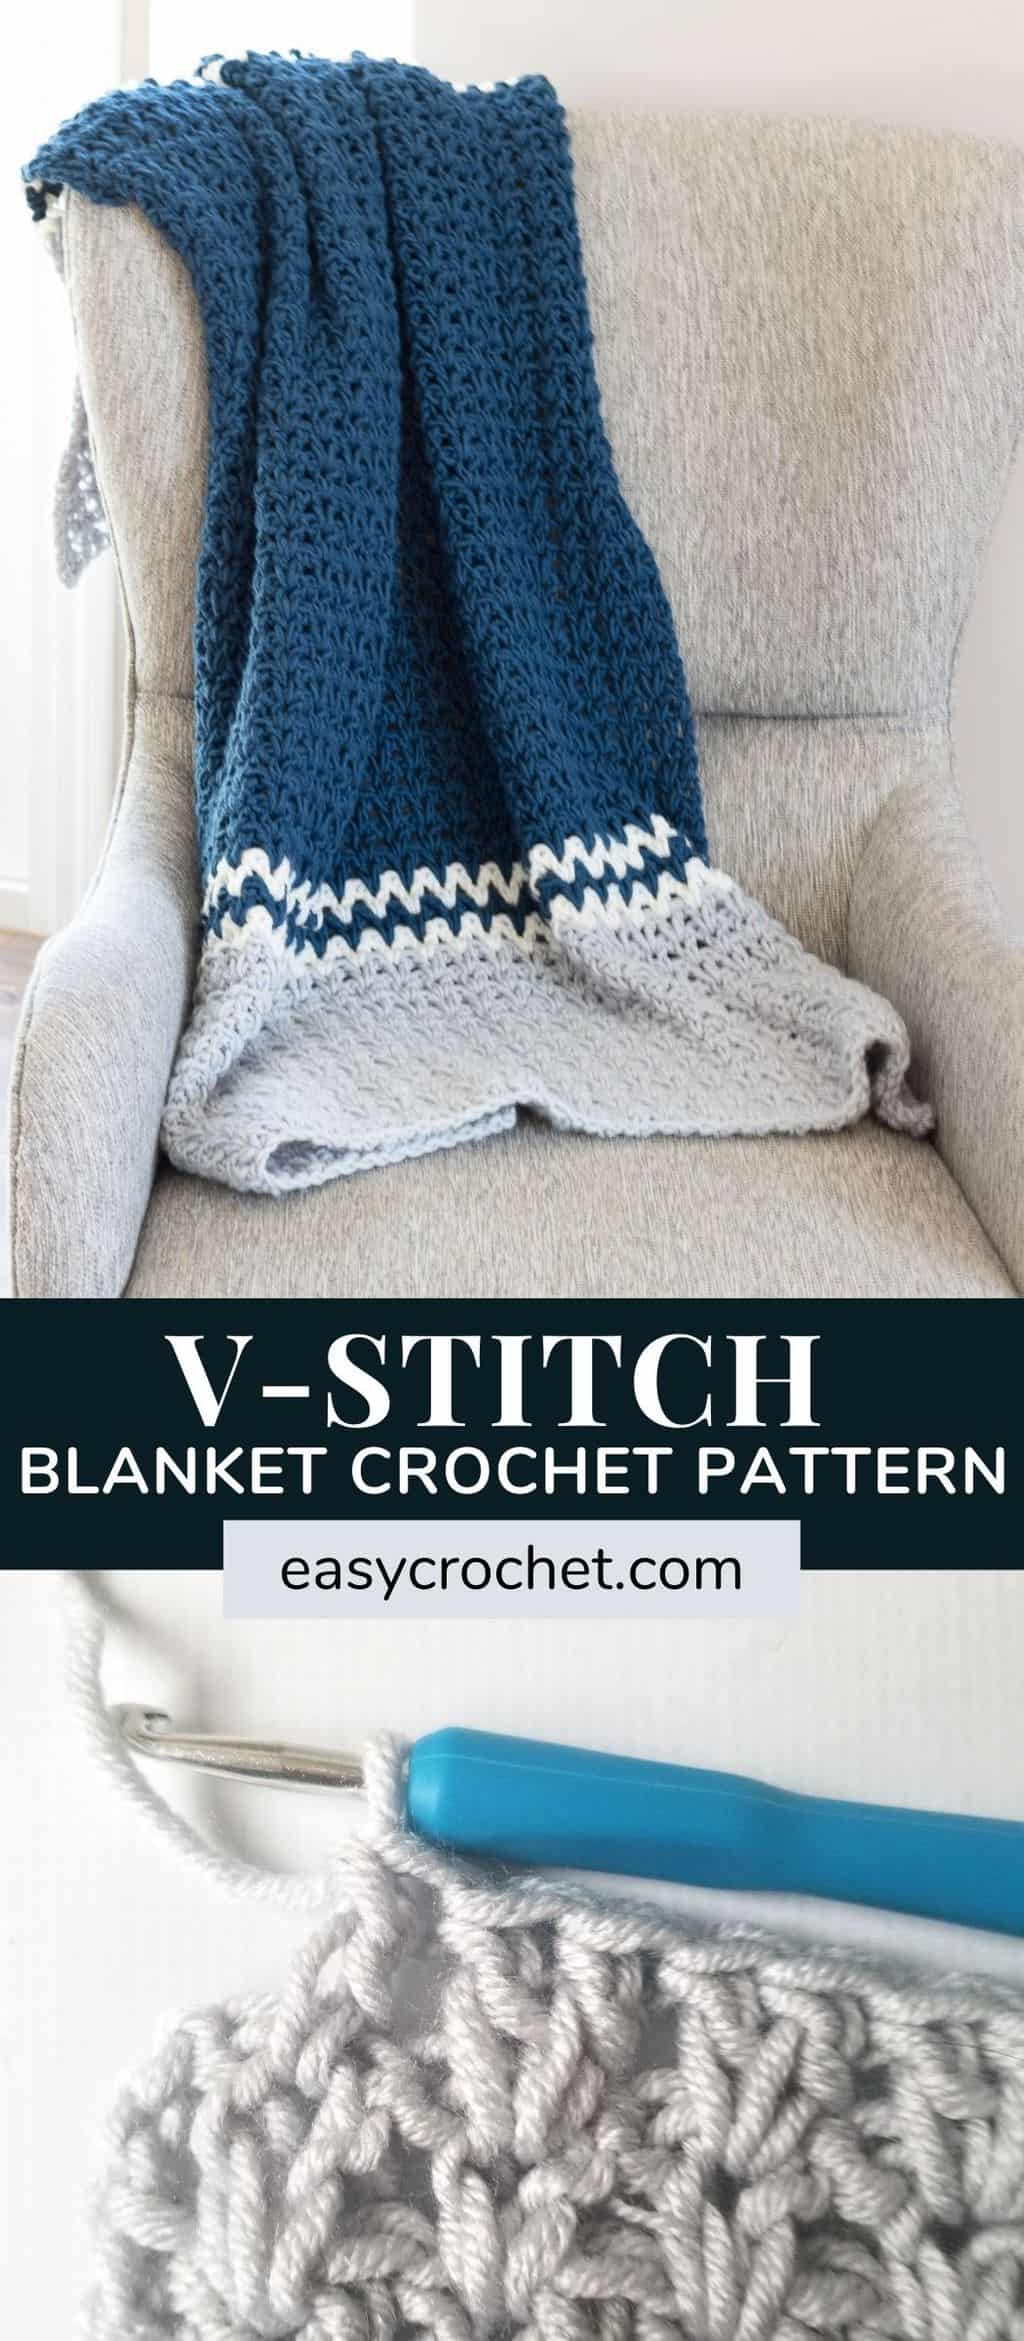 Free Crochet Blanket Pattern using the V-Stitch! This is an easy tutorial featuring the Double Crochet V Stitch! Since this is great for all skill levels even beginners can do it! Find the free pattern at easycrochet.com Pin to Make Later or Open now to start today! via @easycrochetcom